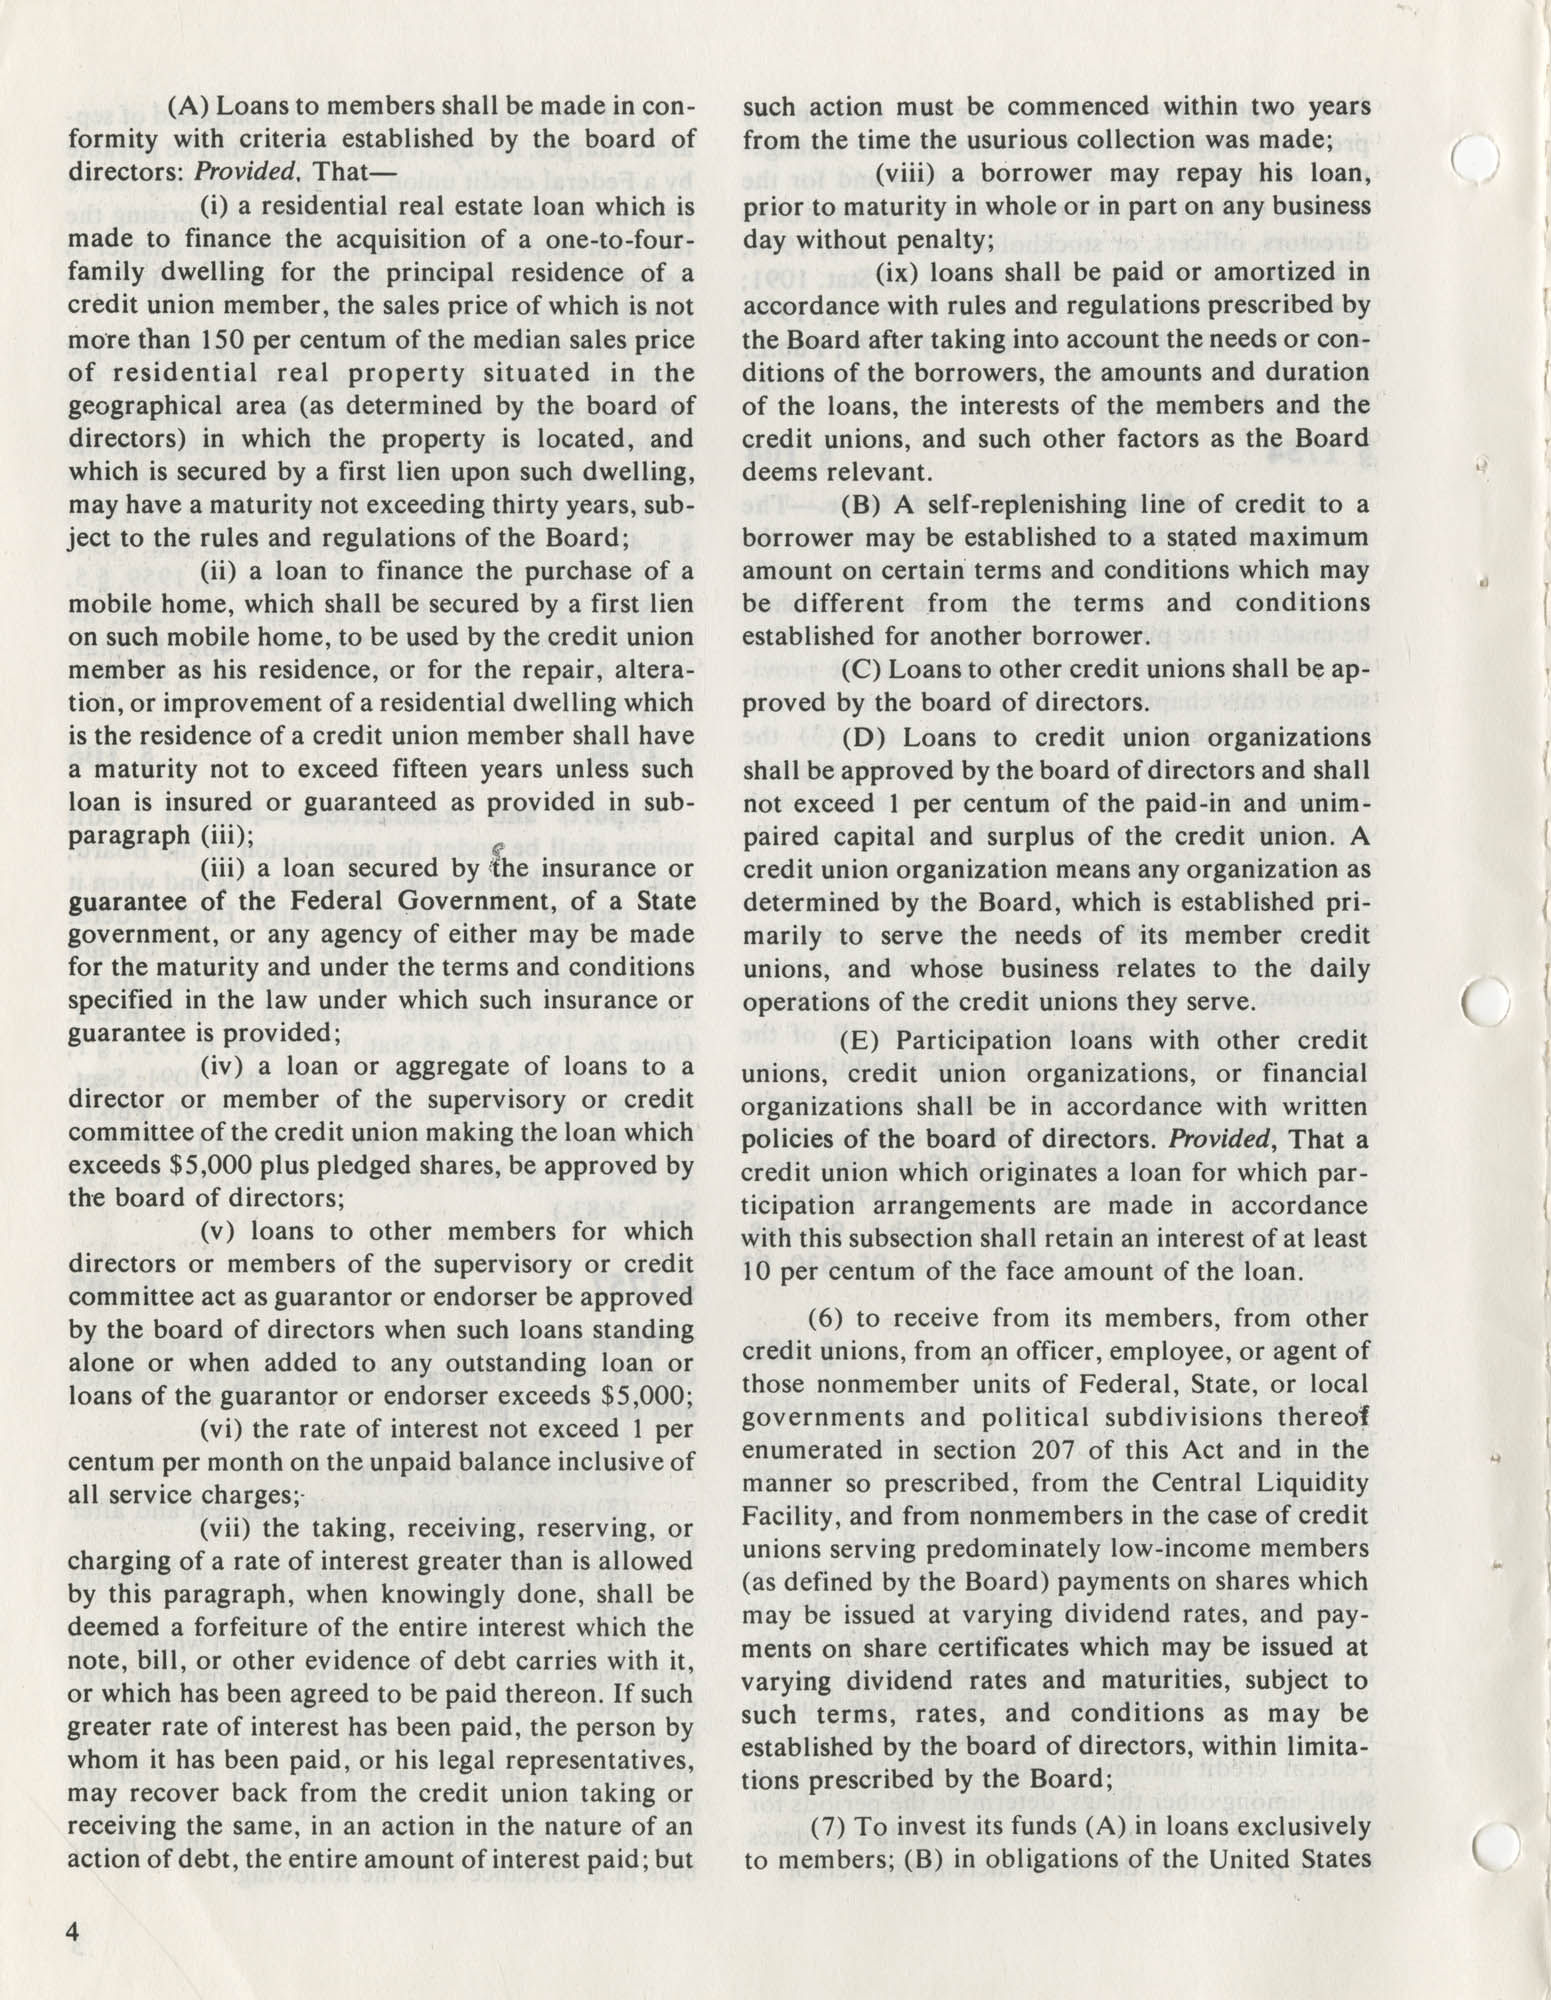 The Federal Credit Union Act, June 1979, Page 4